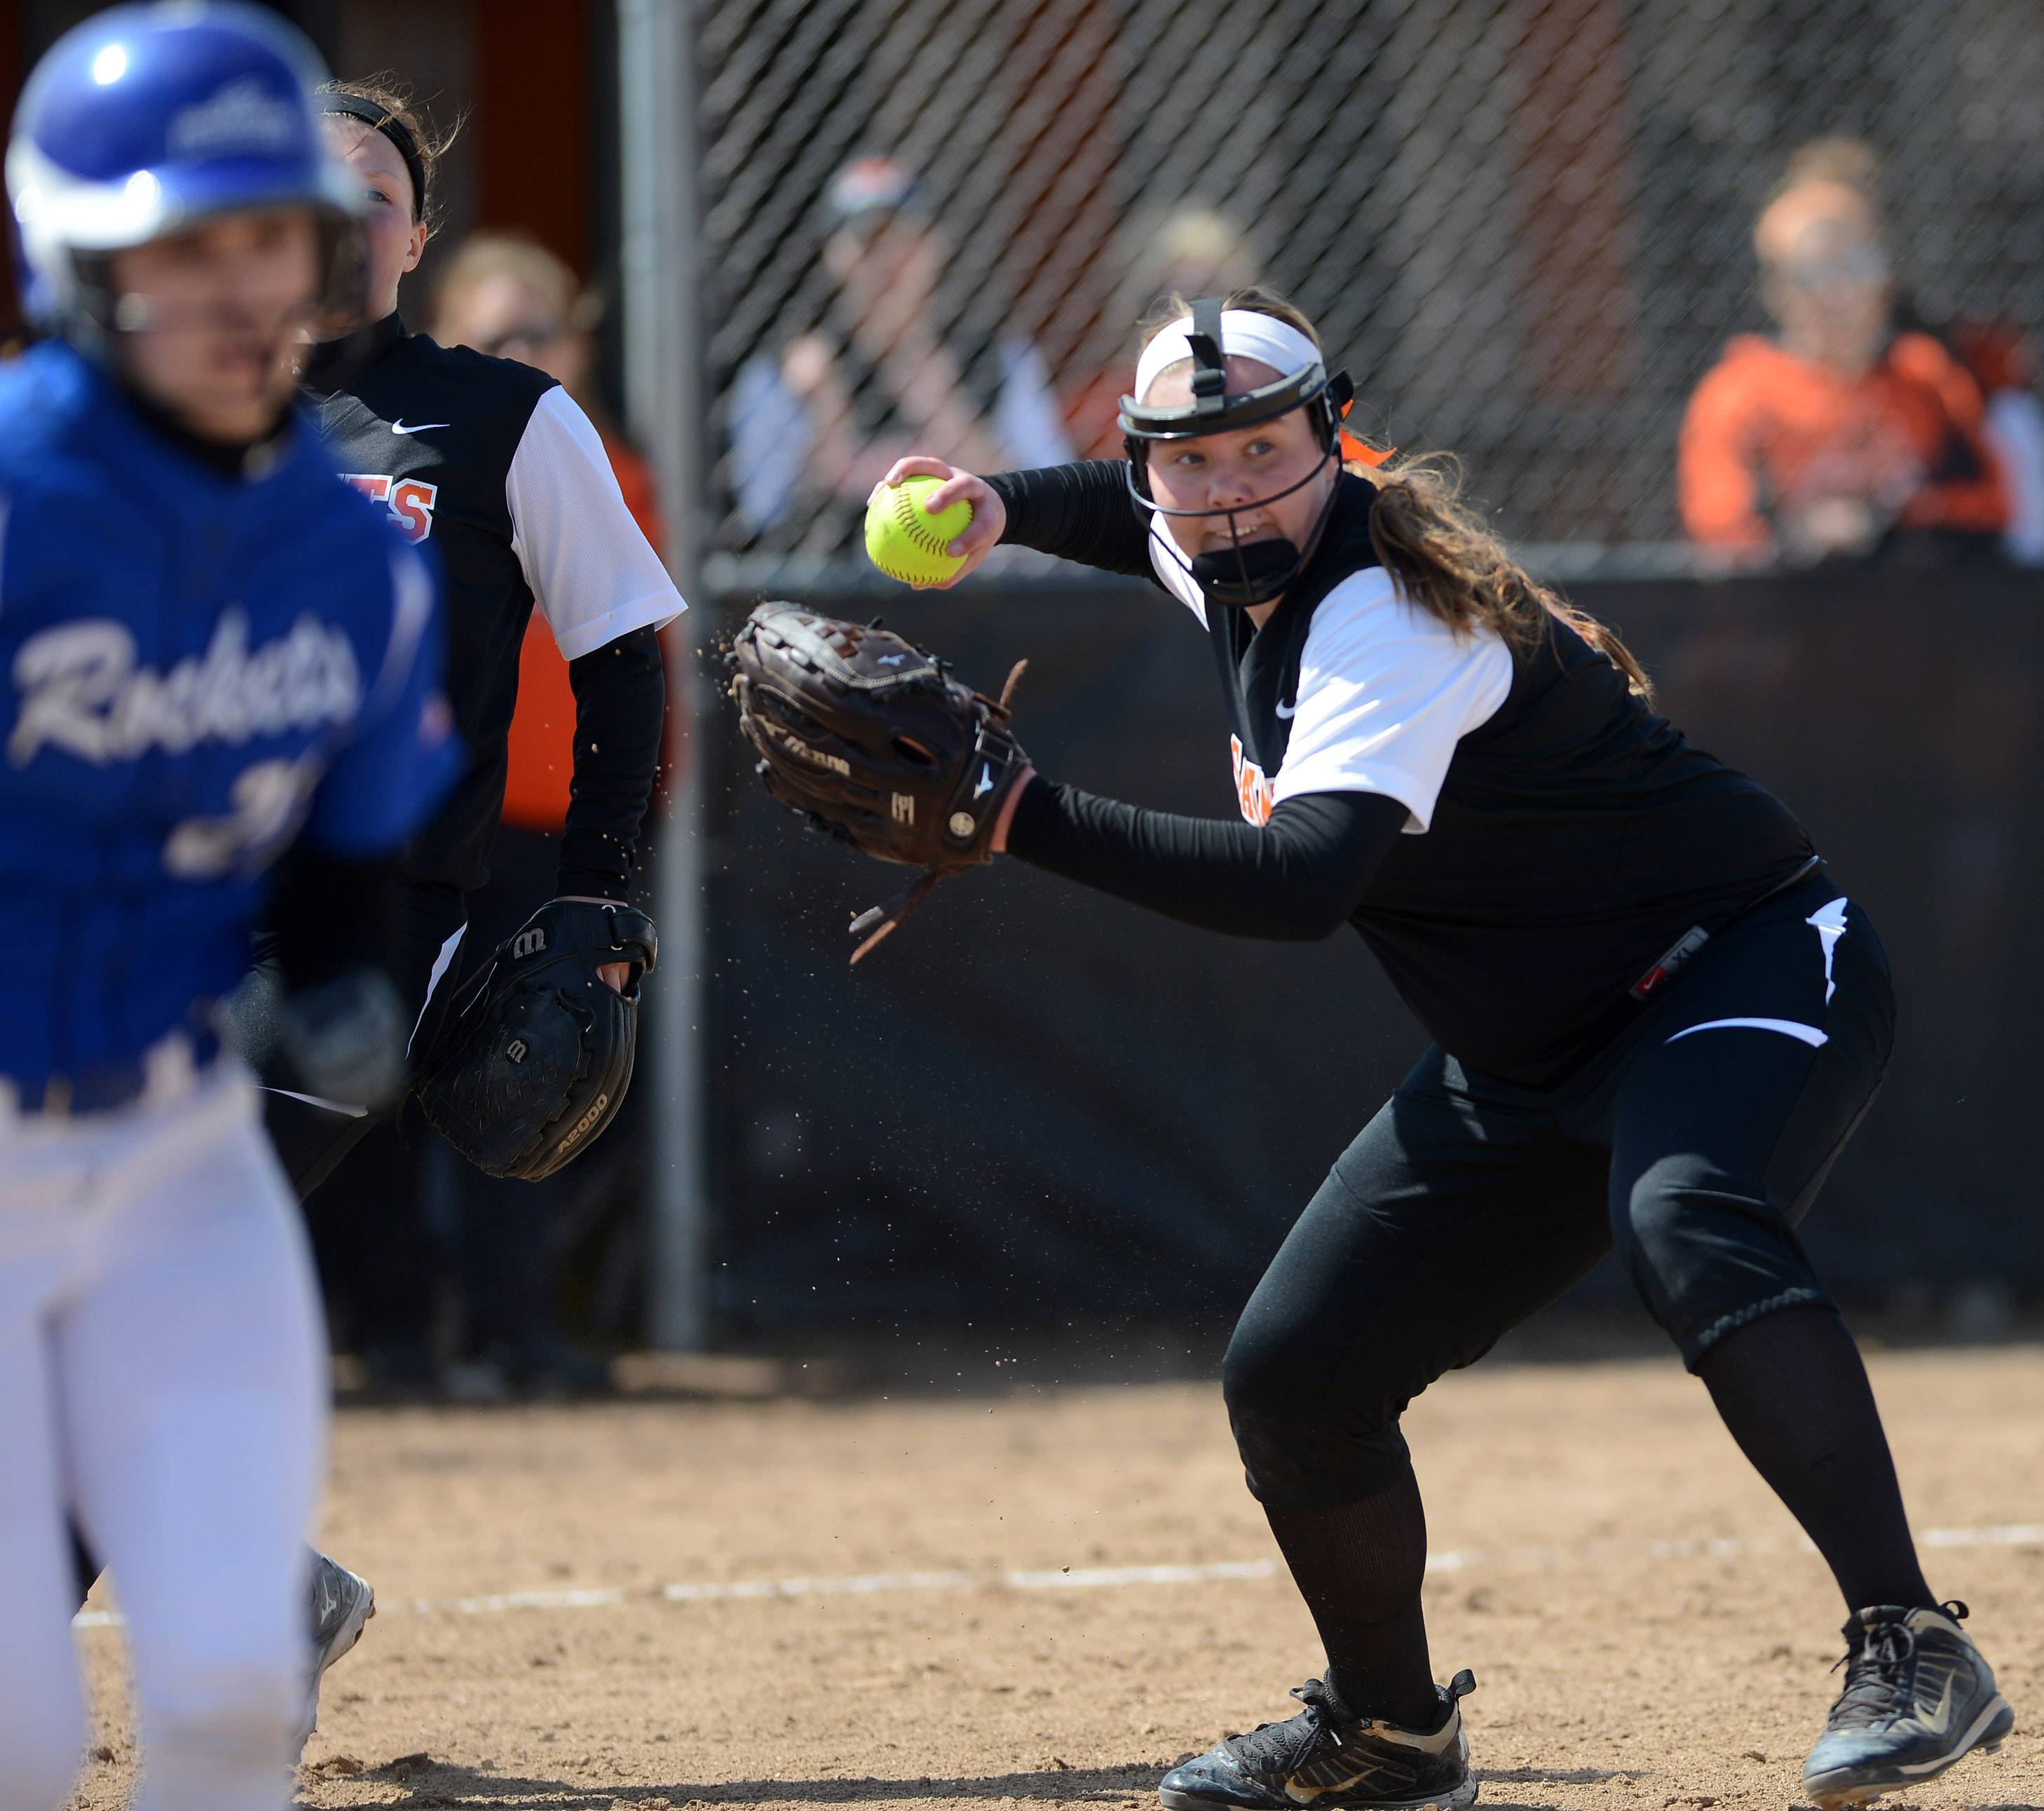 St. Charles East pitcher Haley Beno fields a bunt and fires to first to throw out Burlington Central's Kelly Wiater during Monday's game in St. Charles.